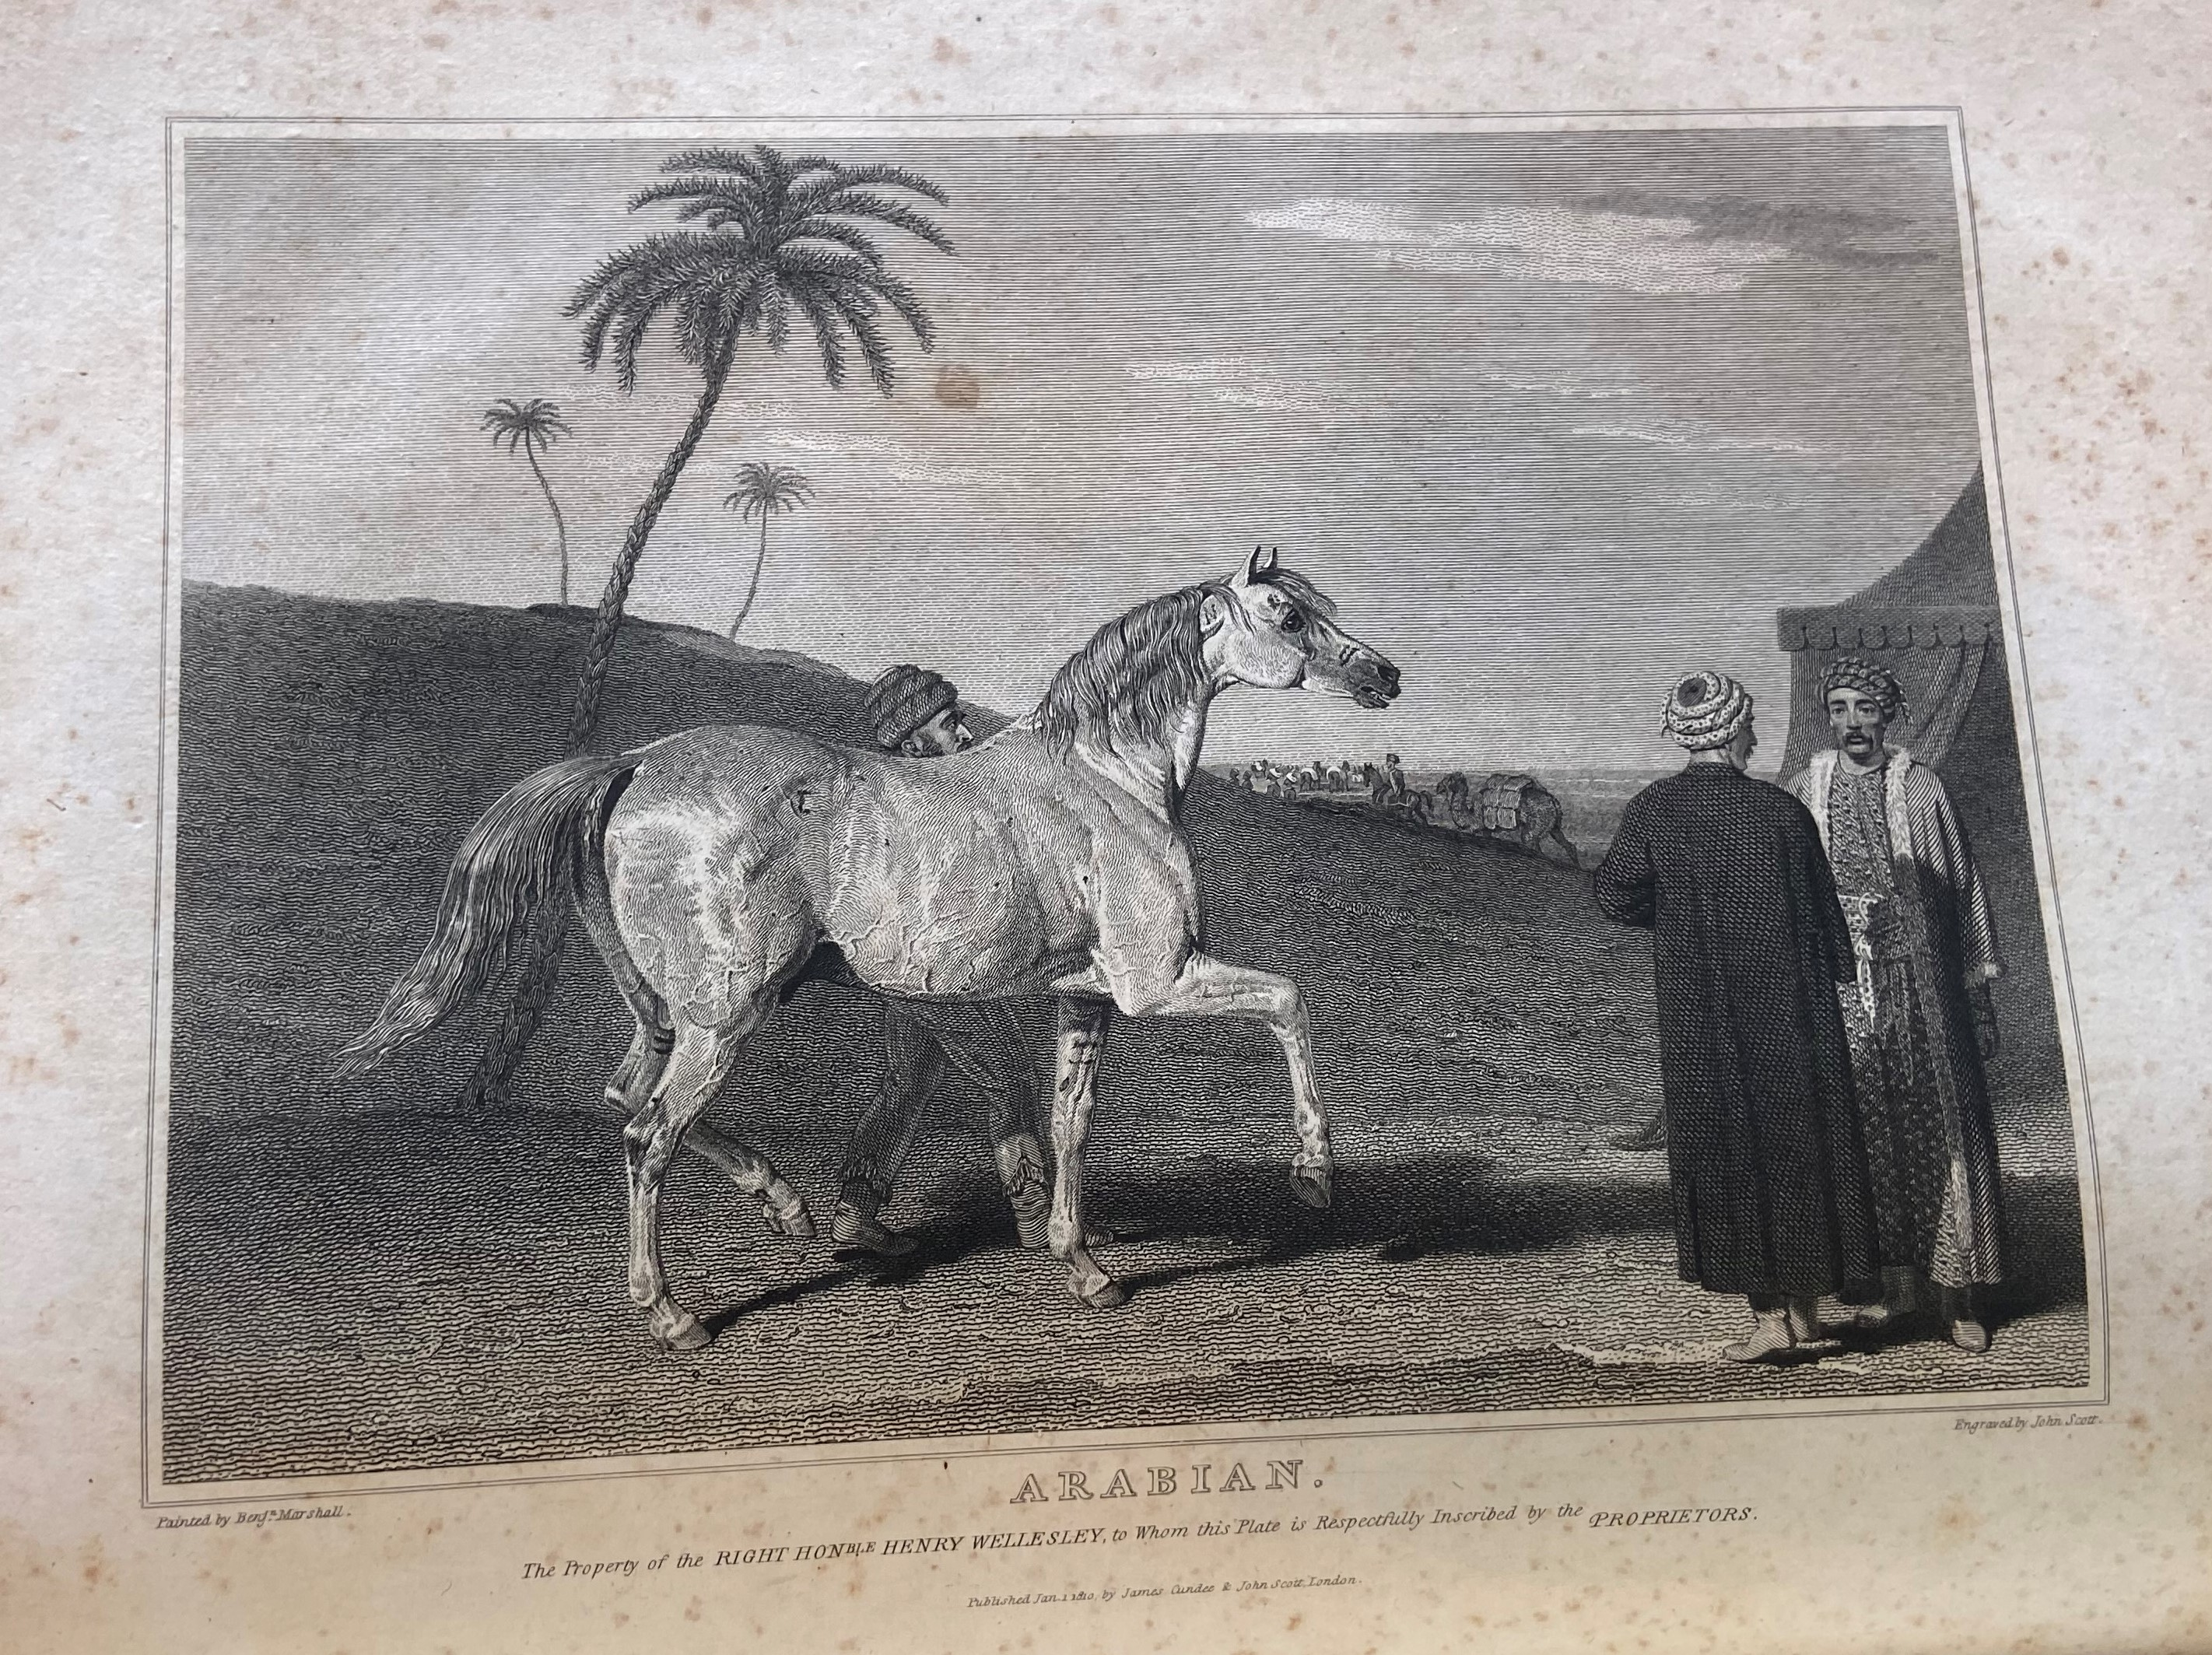 Lawrence (John)ÿThe History and Delineation of the Horse, in all its Varieties, ... Character of the - Image 3 of 3